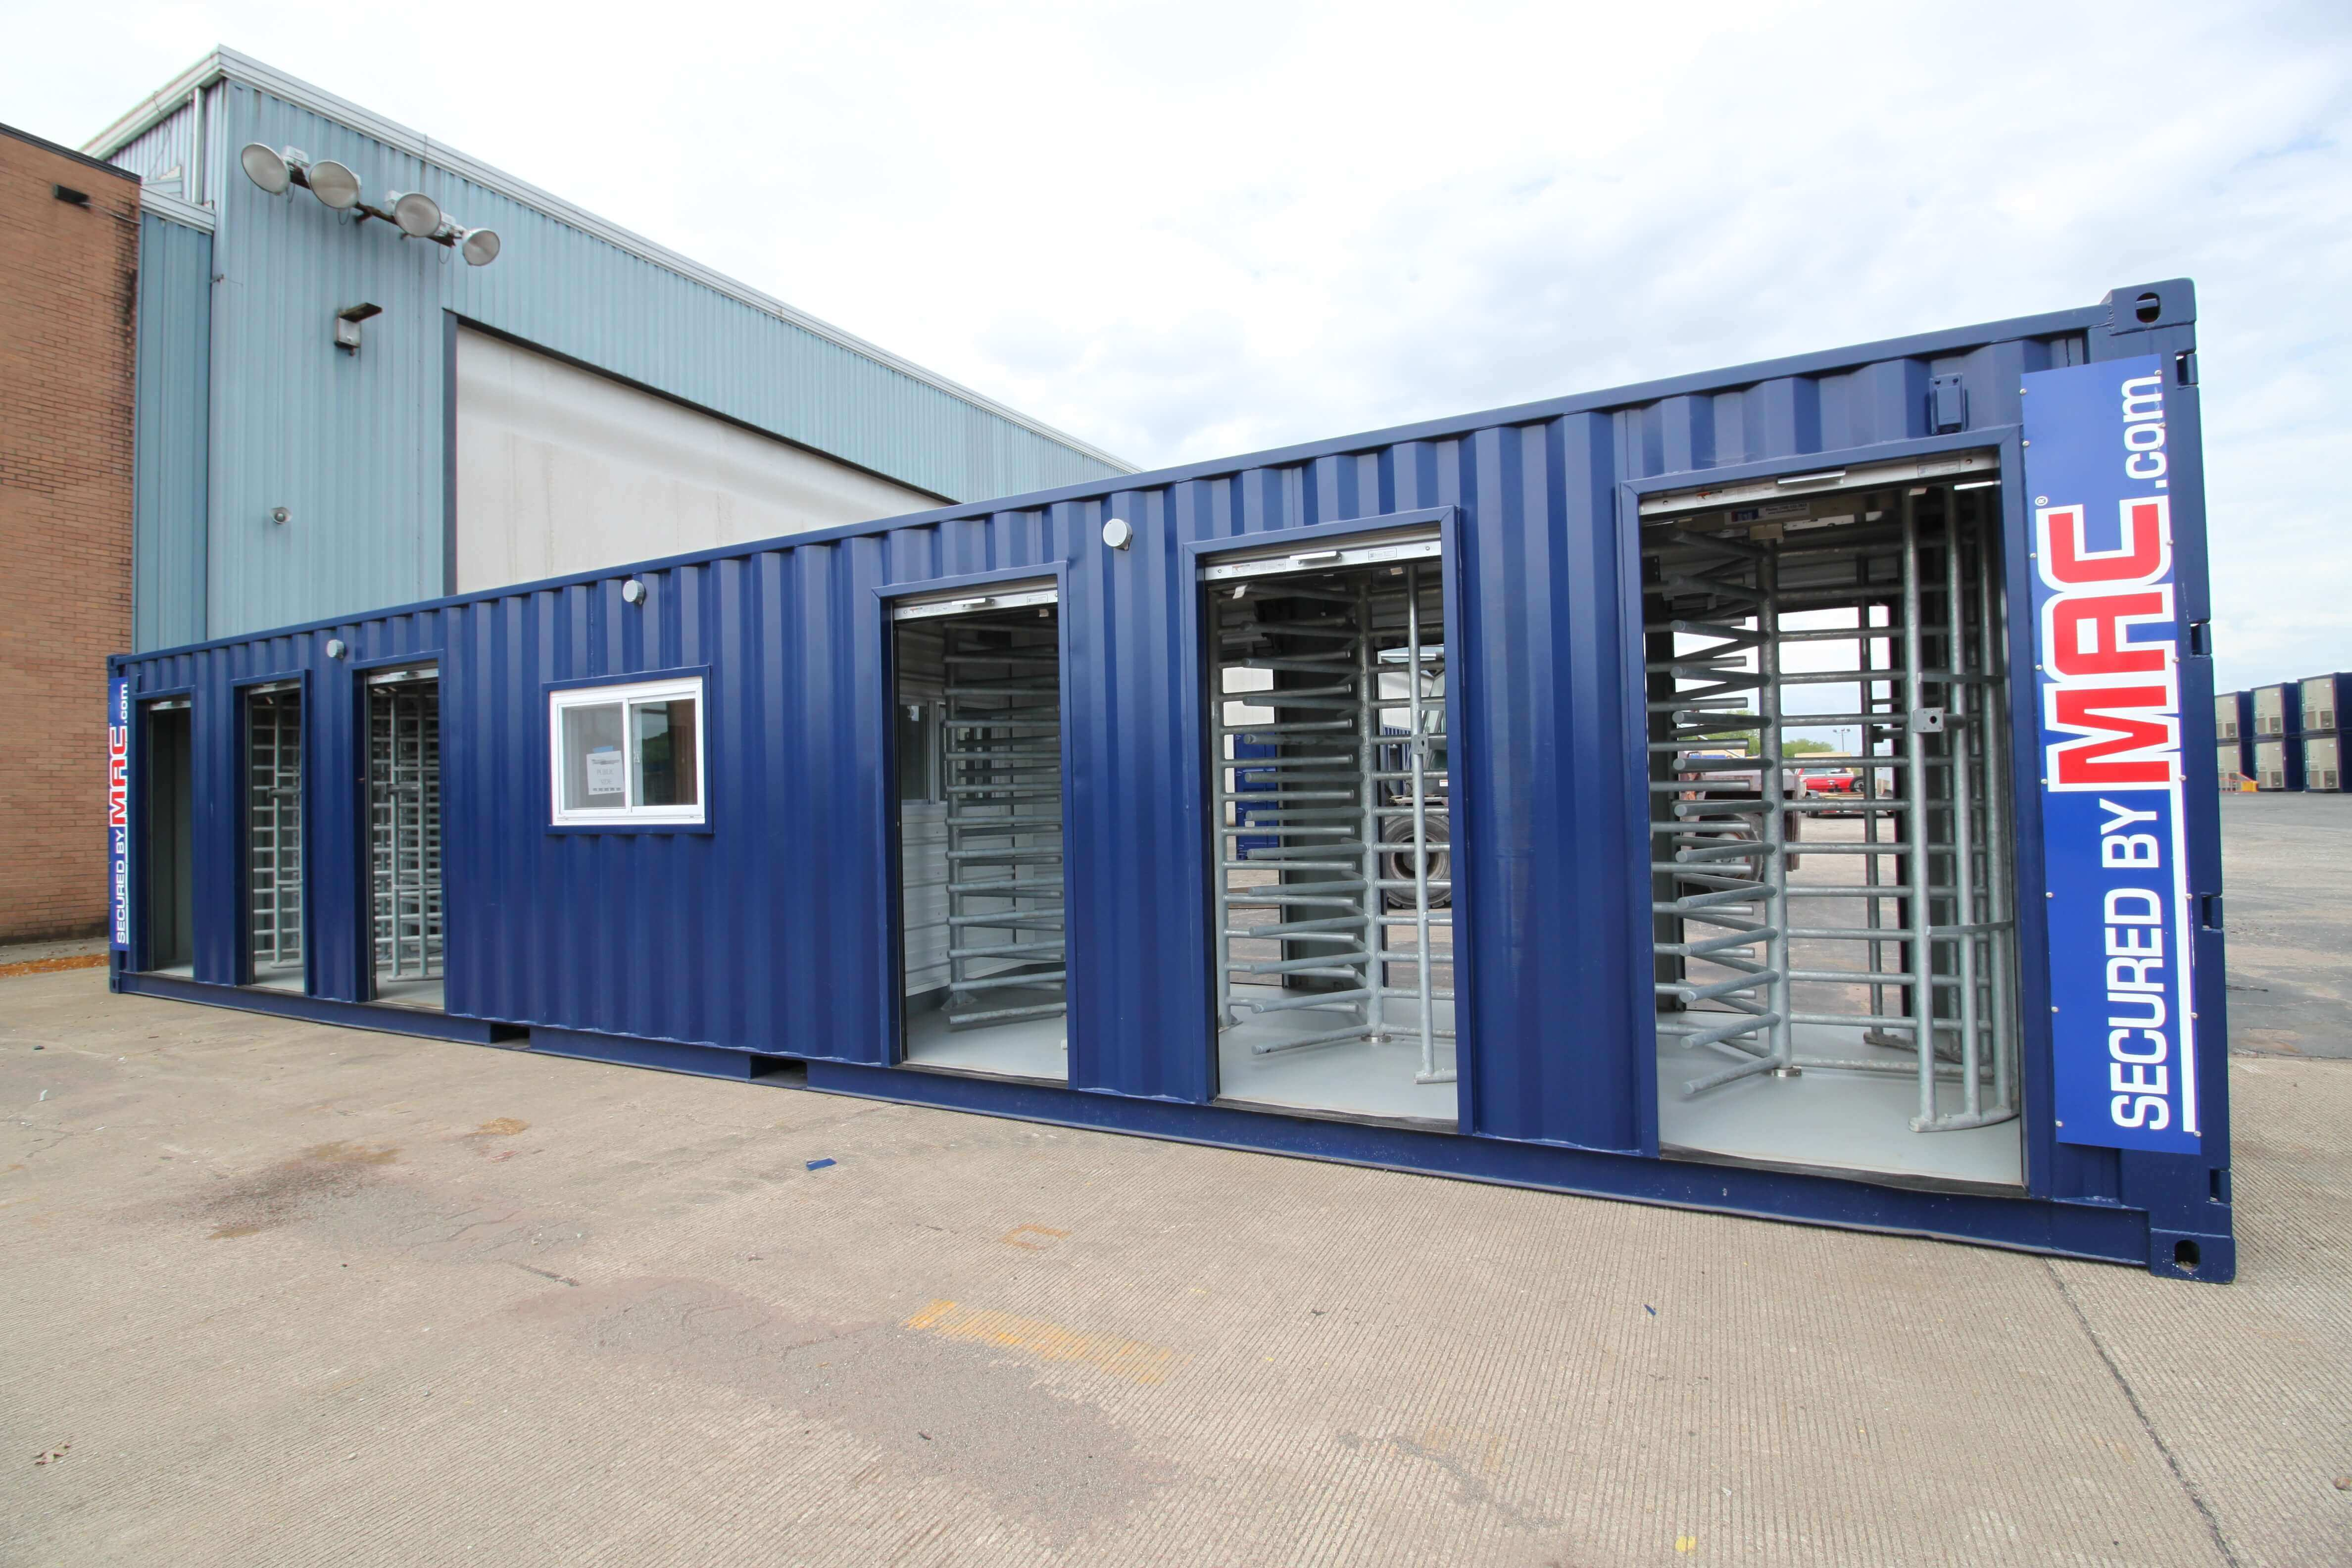 MAC-6, six turnstiles with an office, patented MAC Portals